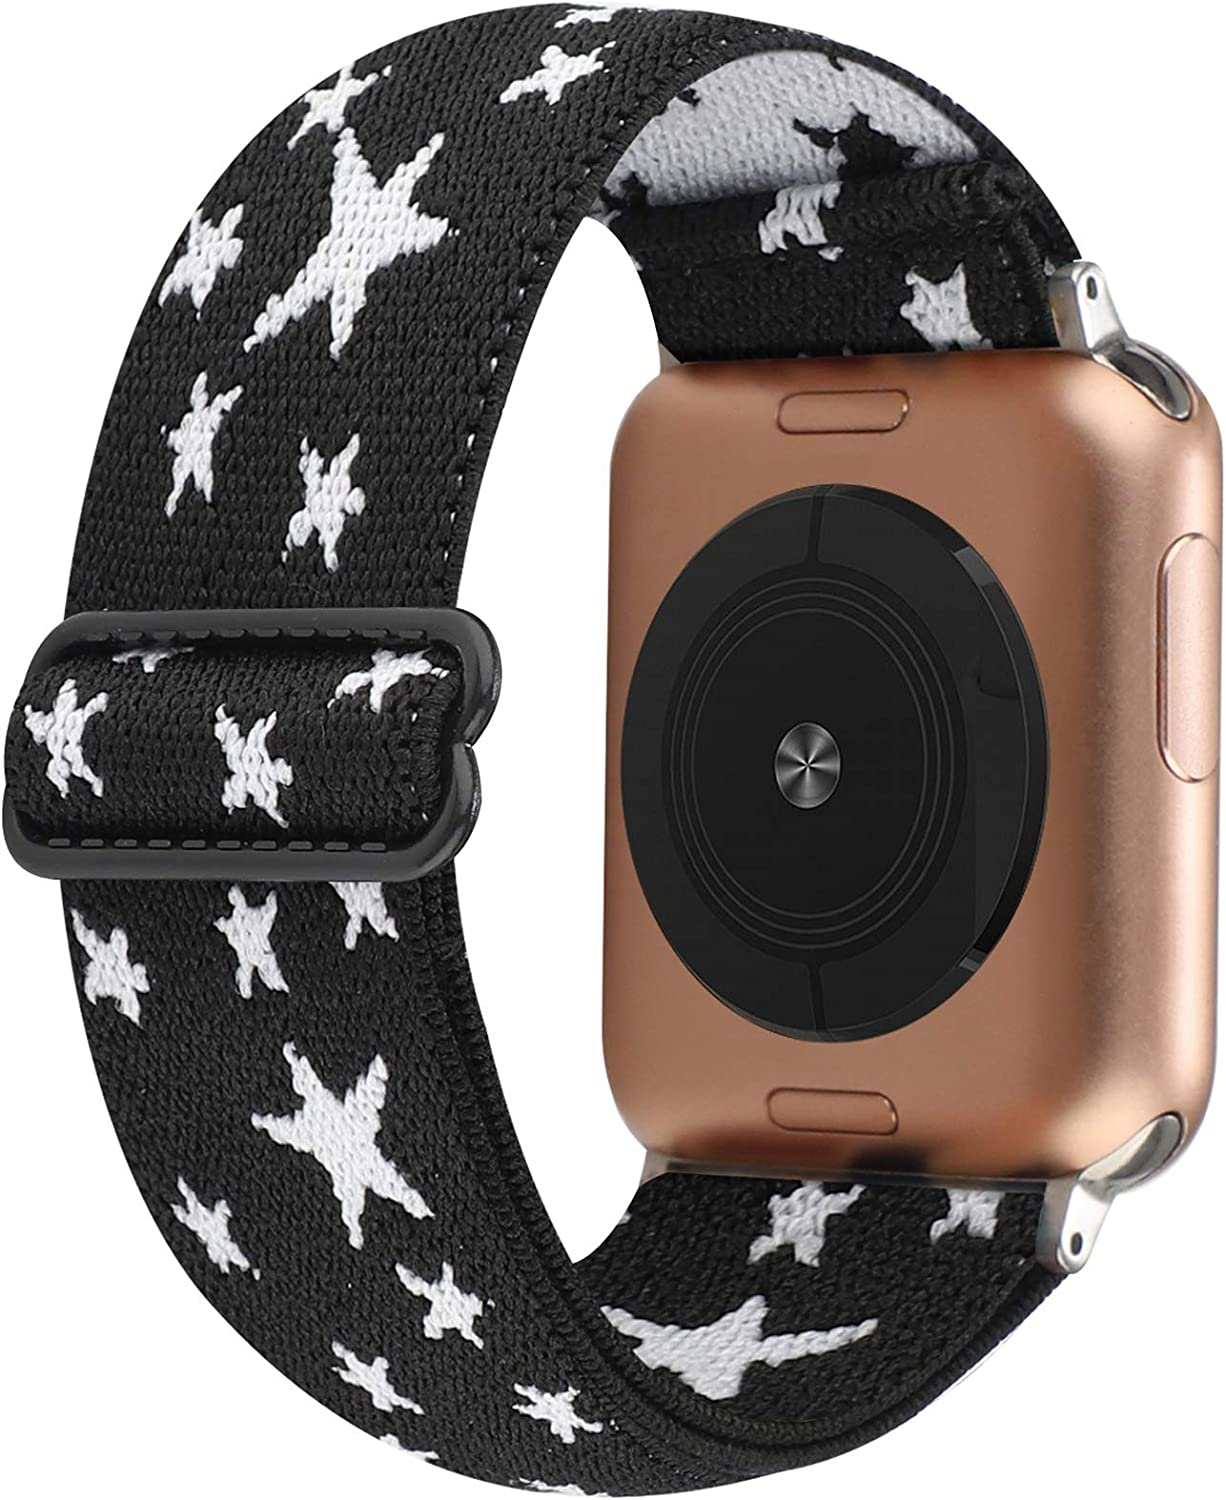 Stretchy Nylon Solo Loop Bands Compatible with Apple Watch 38mm 40mm, Adjustable Stretch Braided Sport Elastics Women Men Strap Compatible with iWatch Series 6/5/4/3/2/1 SE 38mm 40mm White Stars